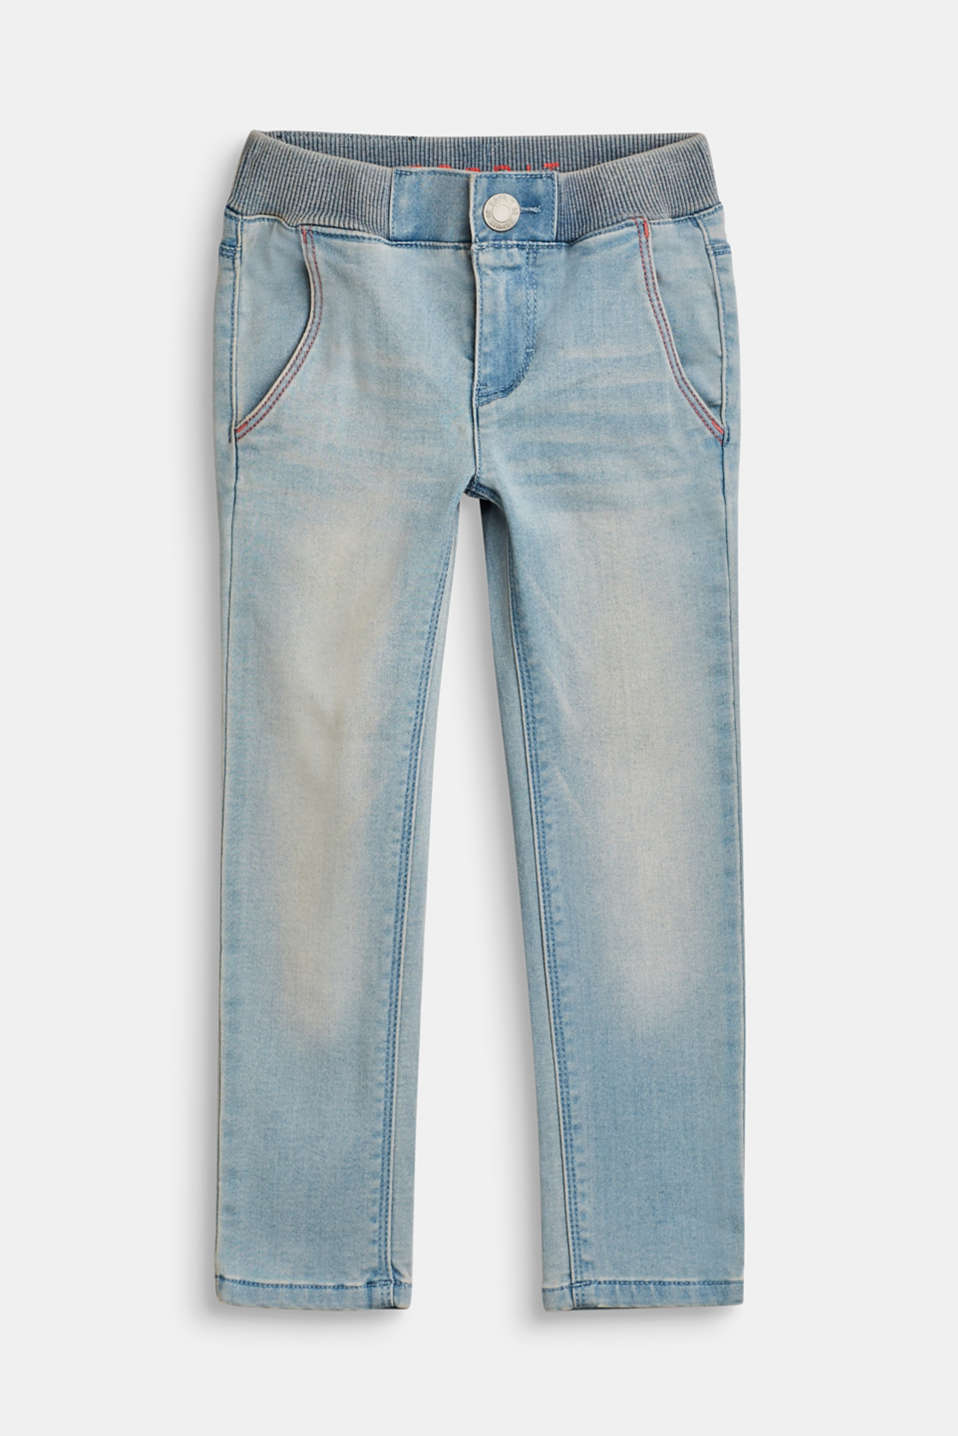 Esprit - Jeans aus super softem Denim mit bunten Stitchings